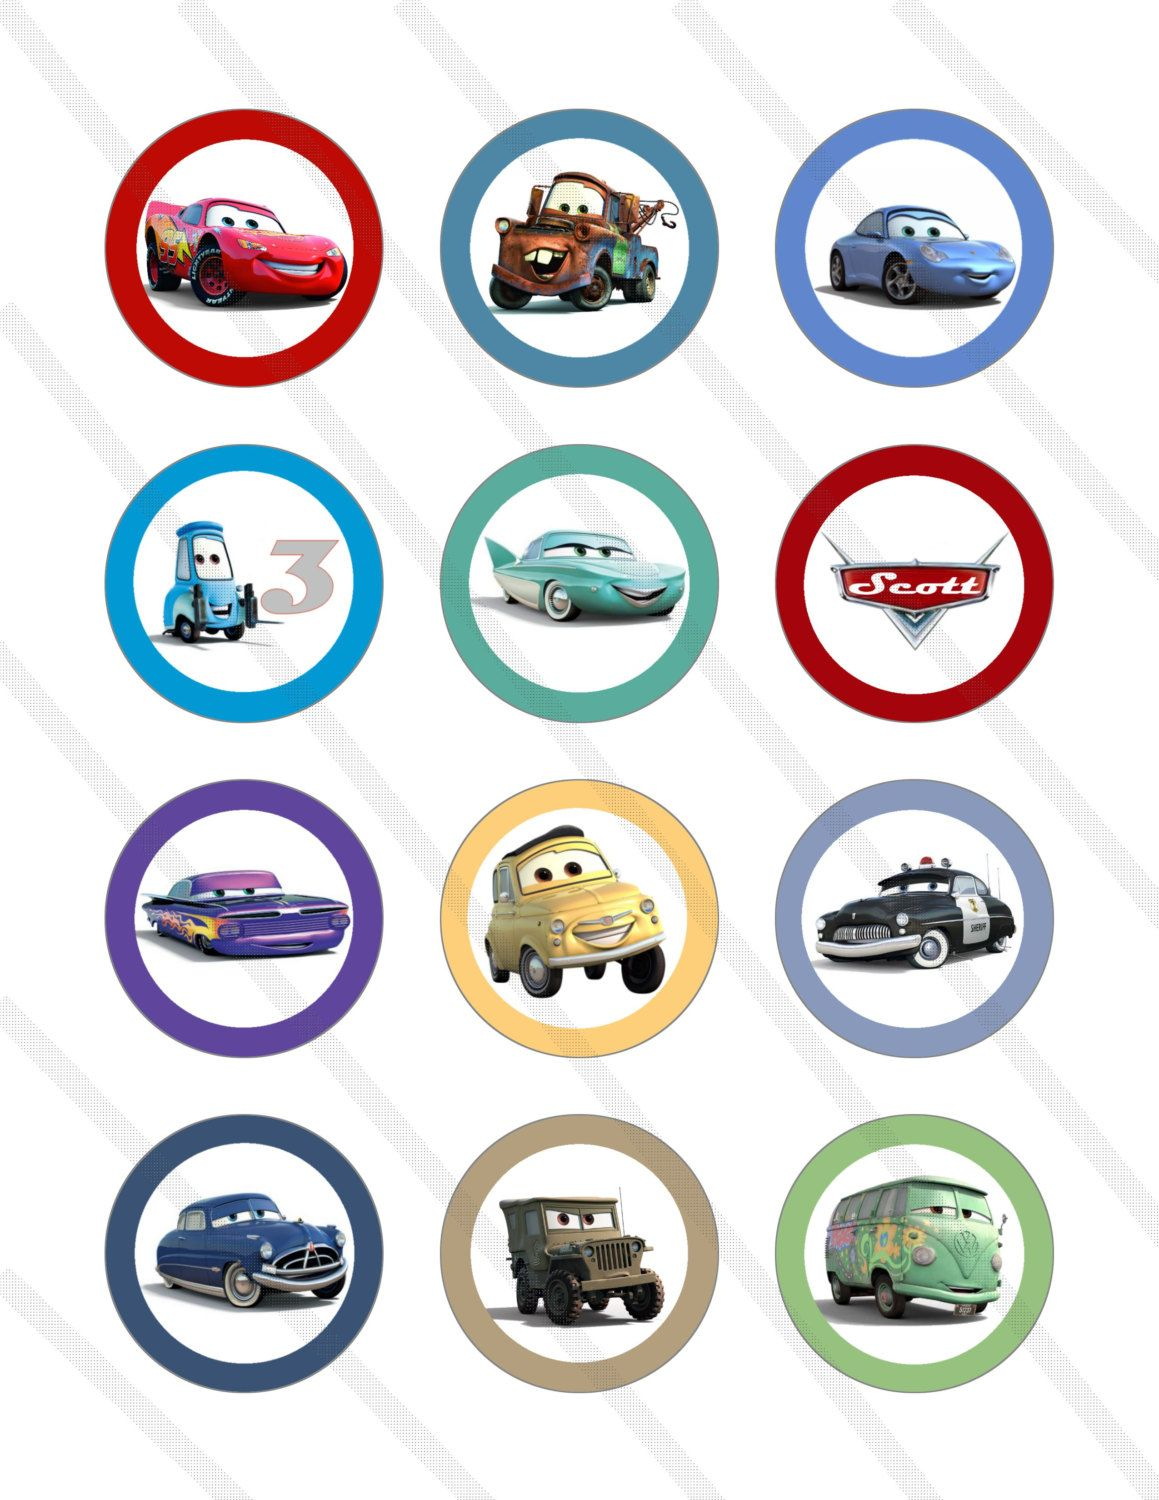 Disney Cars Cupcake Toppers Free Printables In